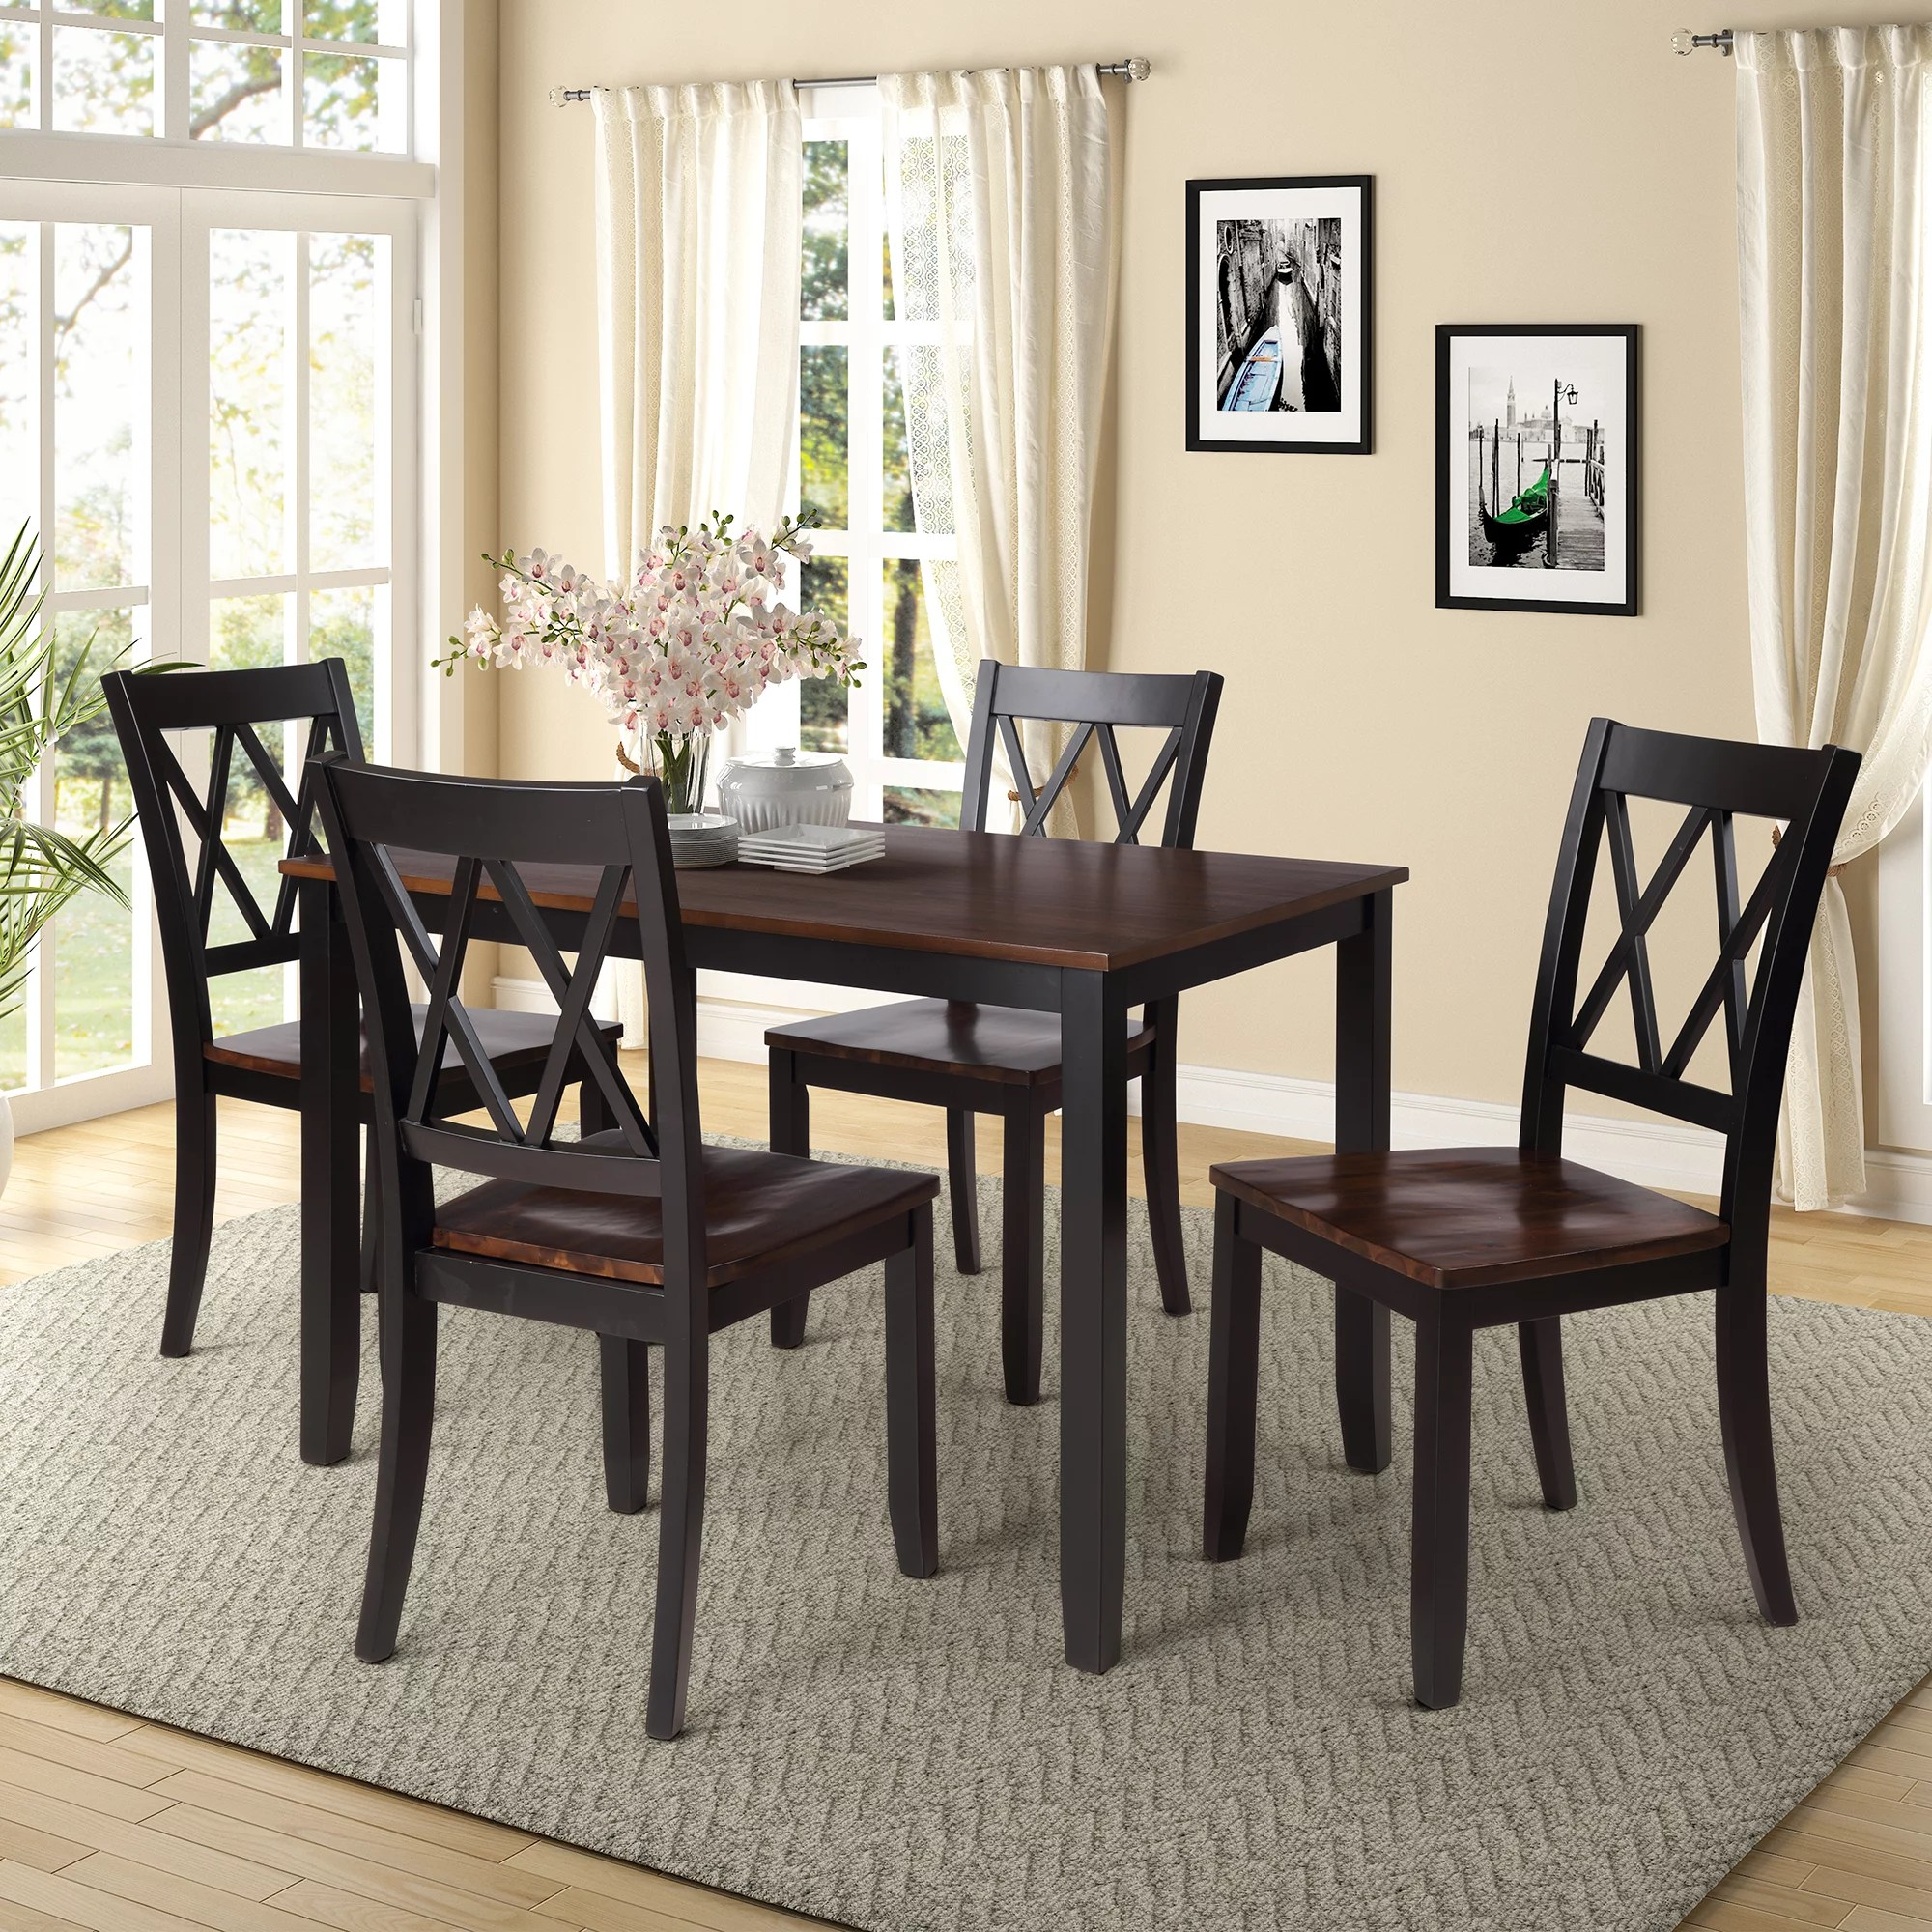 Clearance Black Dining Table Set For 4 Modern 5 Piece Dining Room Table Sets With Chairs Heavy Duty Wooden Rectangular Kitchen Table Set For Home Kitchen Living Room Restaurant L865 Walmart Com